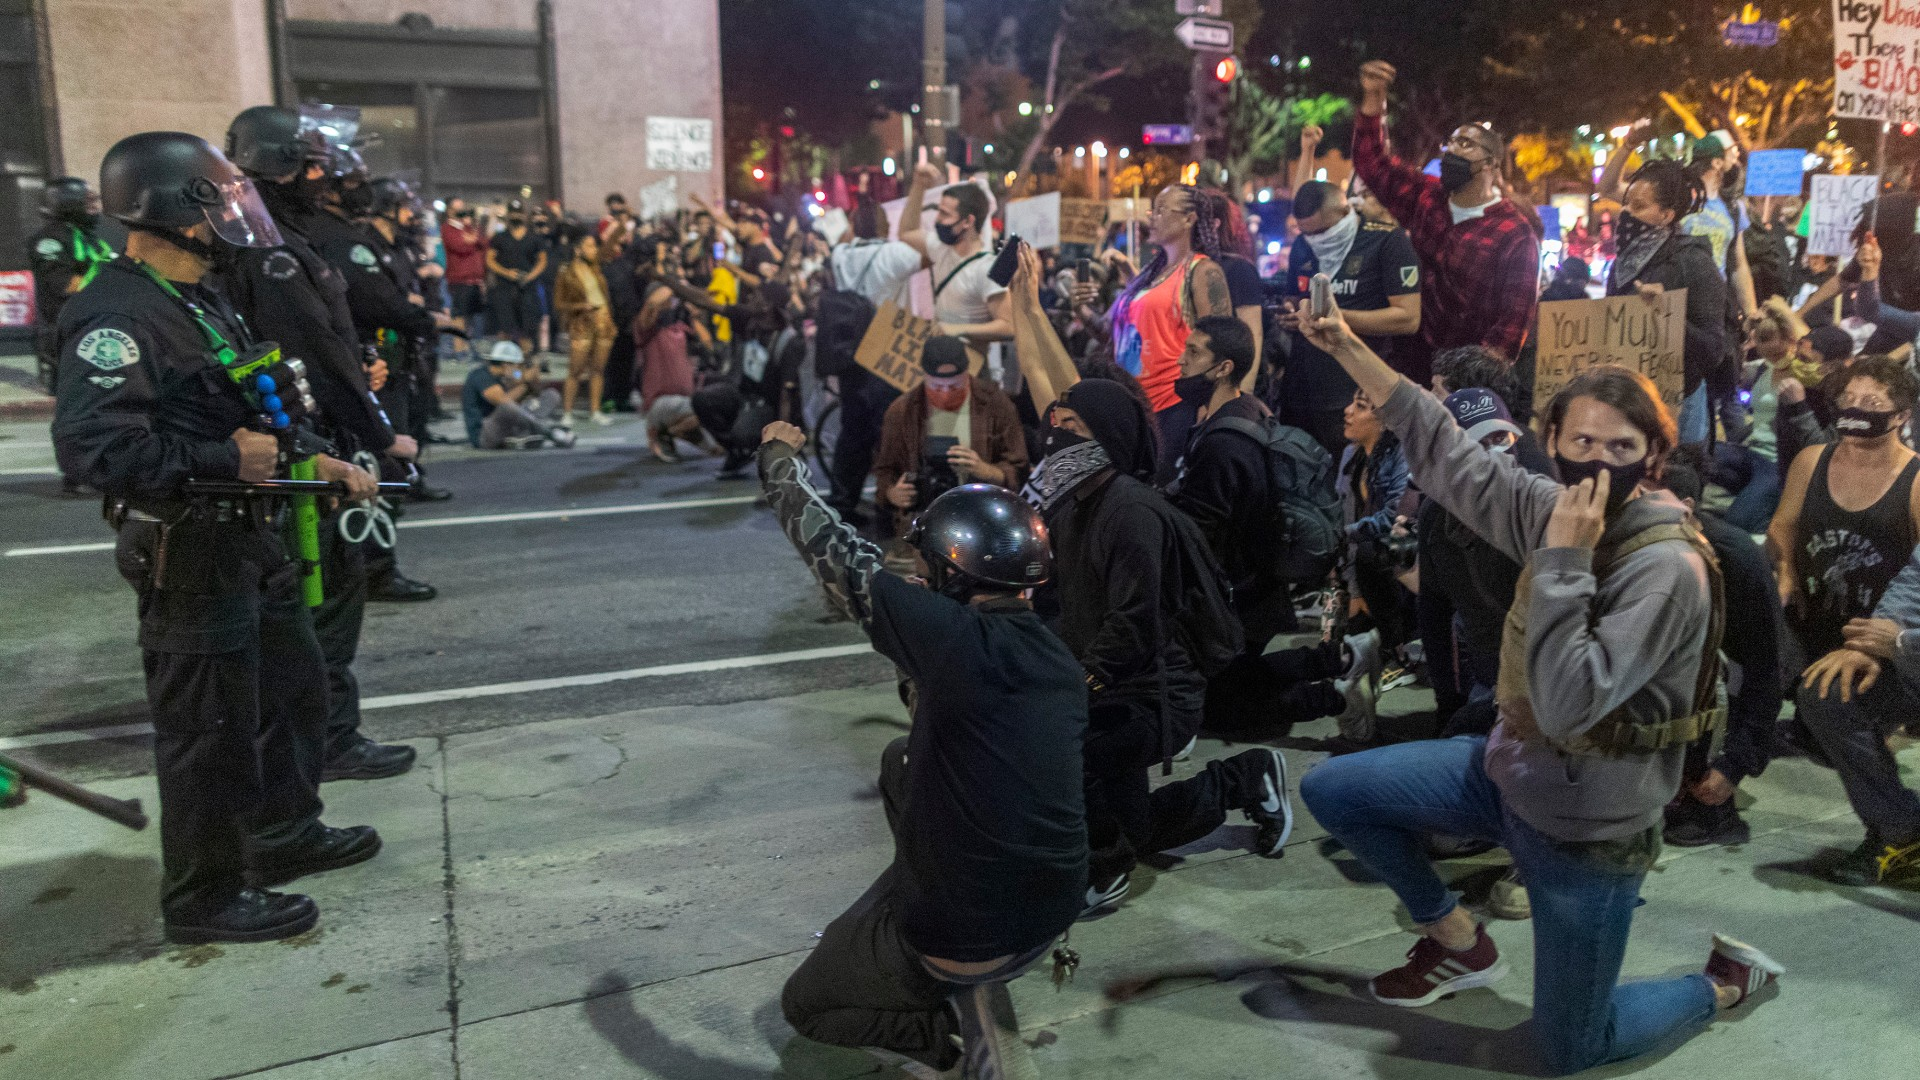 Protesters confront police as demonstrations continue over the killing of George Floyd on June 6, 2020 in Los Angeles, California. (David McNew/Getty Images)